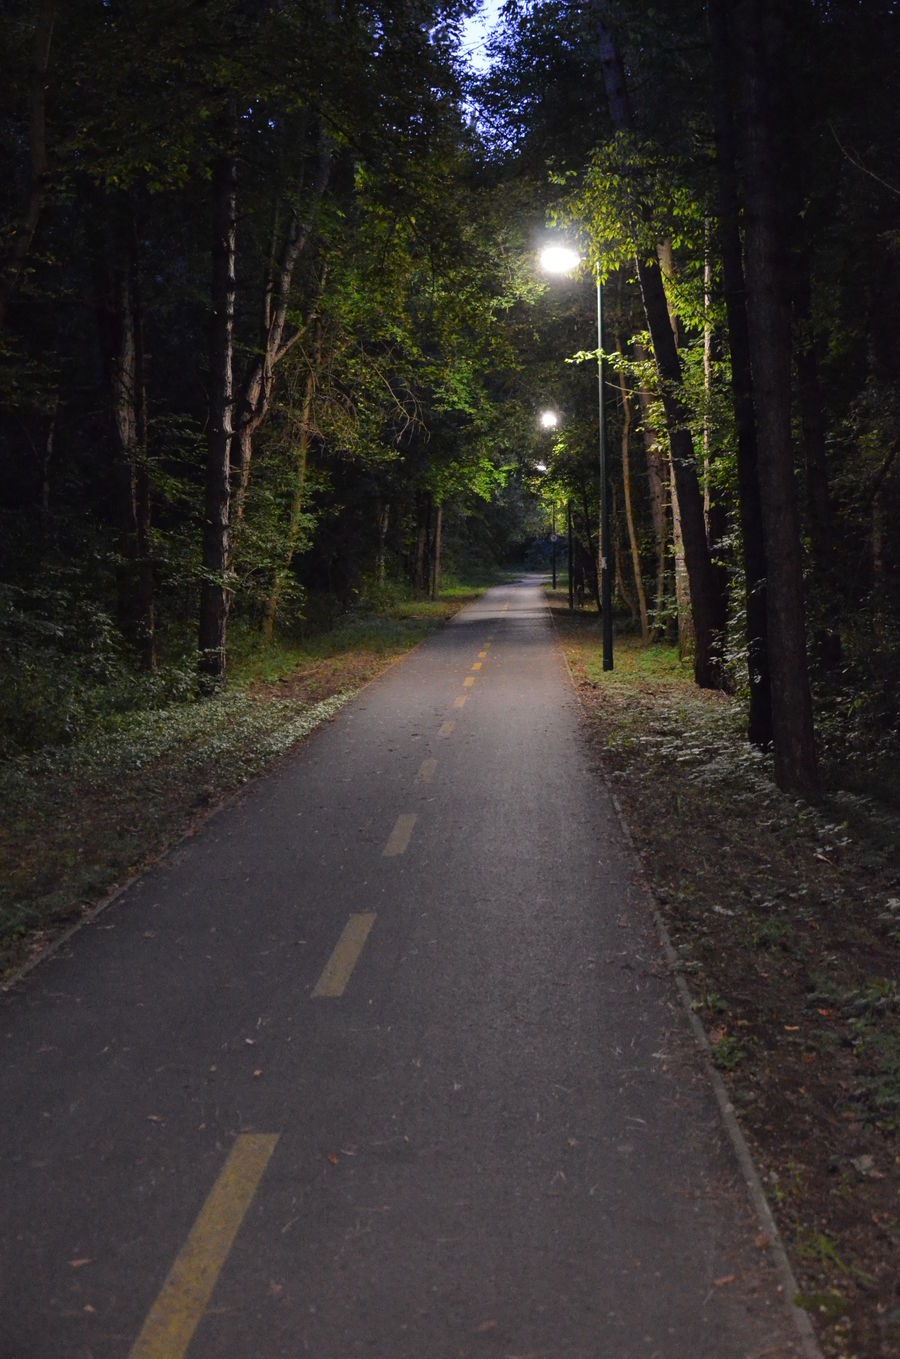 Bicycle Road Diminishing Perspective Forest Illuminated Long Nature Night Outdoors Road Tata The Way Forward Tree